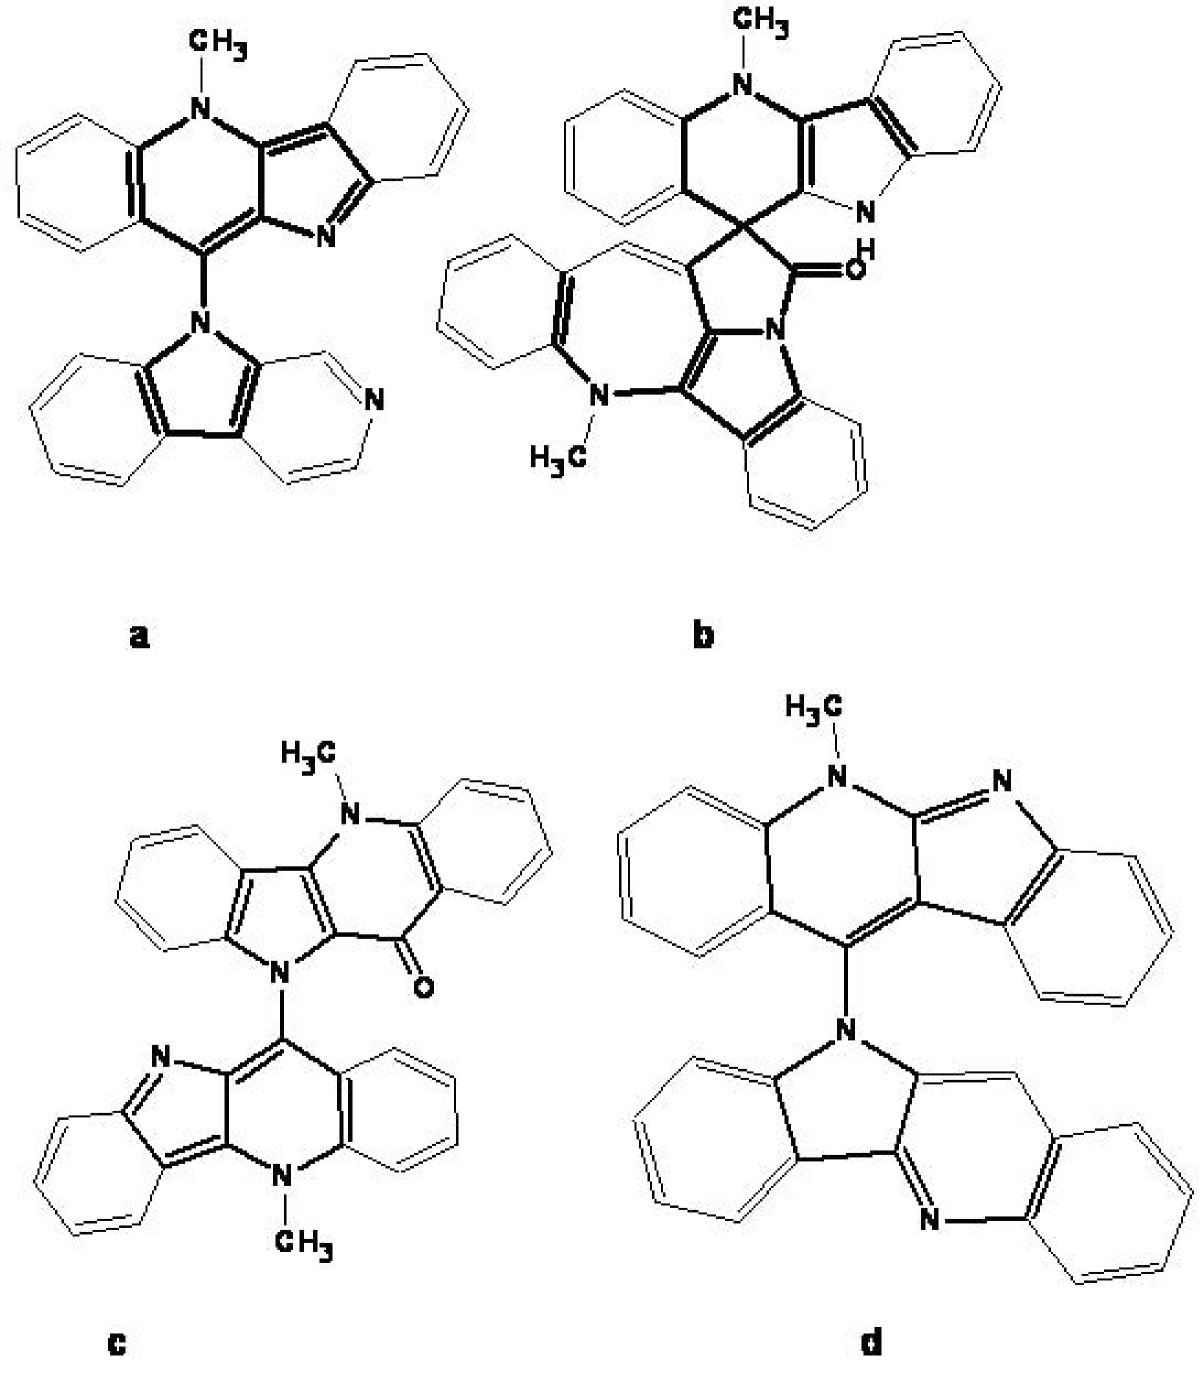 http://static-content.springer.com/image/art%3A10.1186%2F1758-2946-1-3/MediaObjects/13321_2009_Article_3_Fig10_HTML.jpg